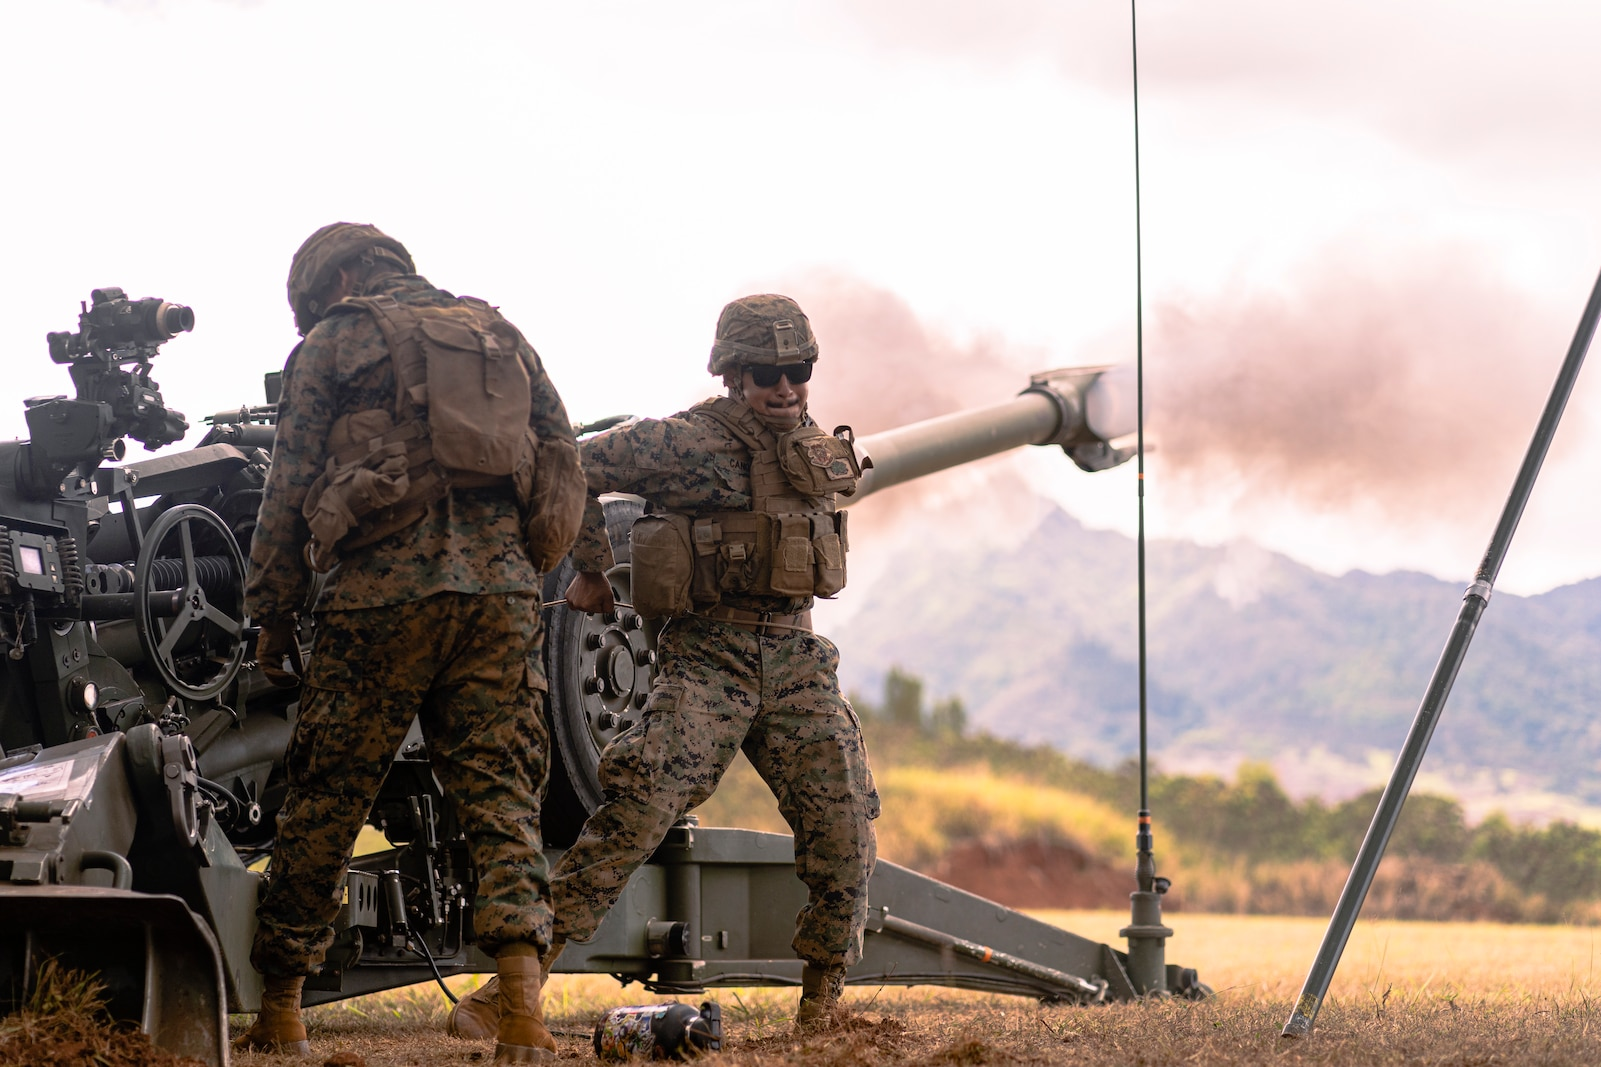 U.S. Marine Cpl. Sergio D. Cano, a motor vehicle operator with 1st Battalion, 12th Marines, fires an M777A2 Howitzer during a live-fire operation on Schofield Barracks, Hawaii, Aug. 31, 2021. 1/12 executes live-fire operations to maintain weapons proficiency and combat readiness. (U.S Marine Corps photo by Cpl. Juan Carpanzano)